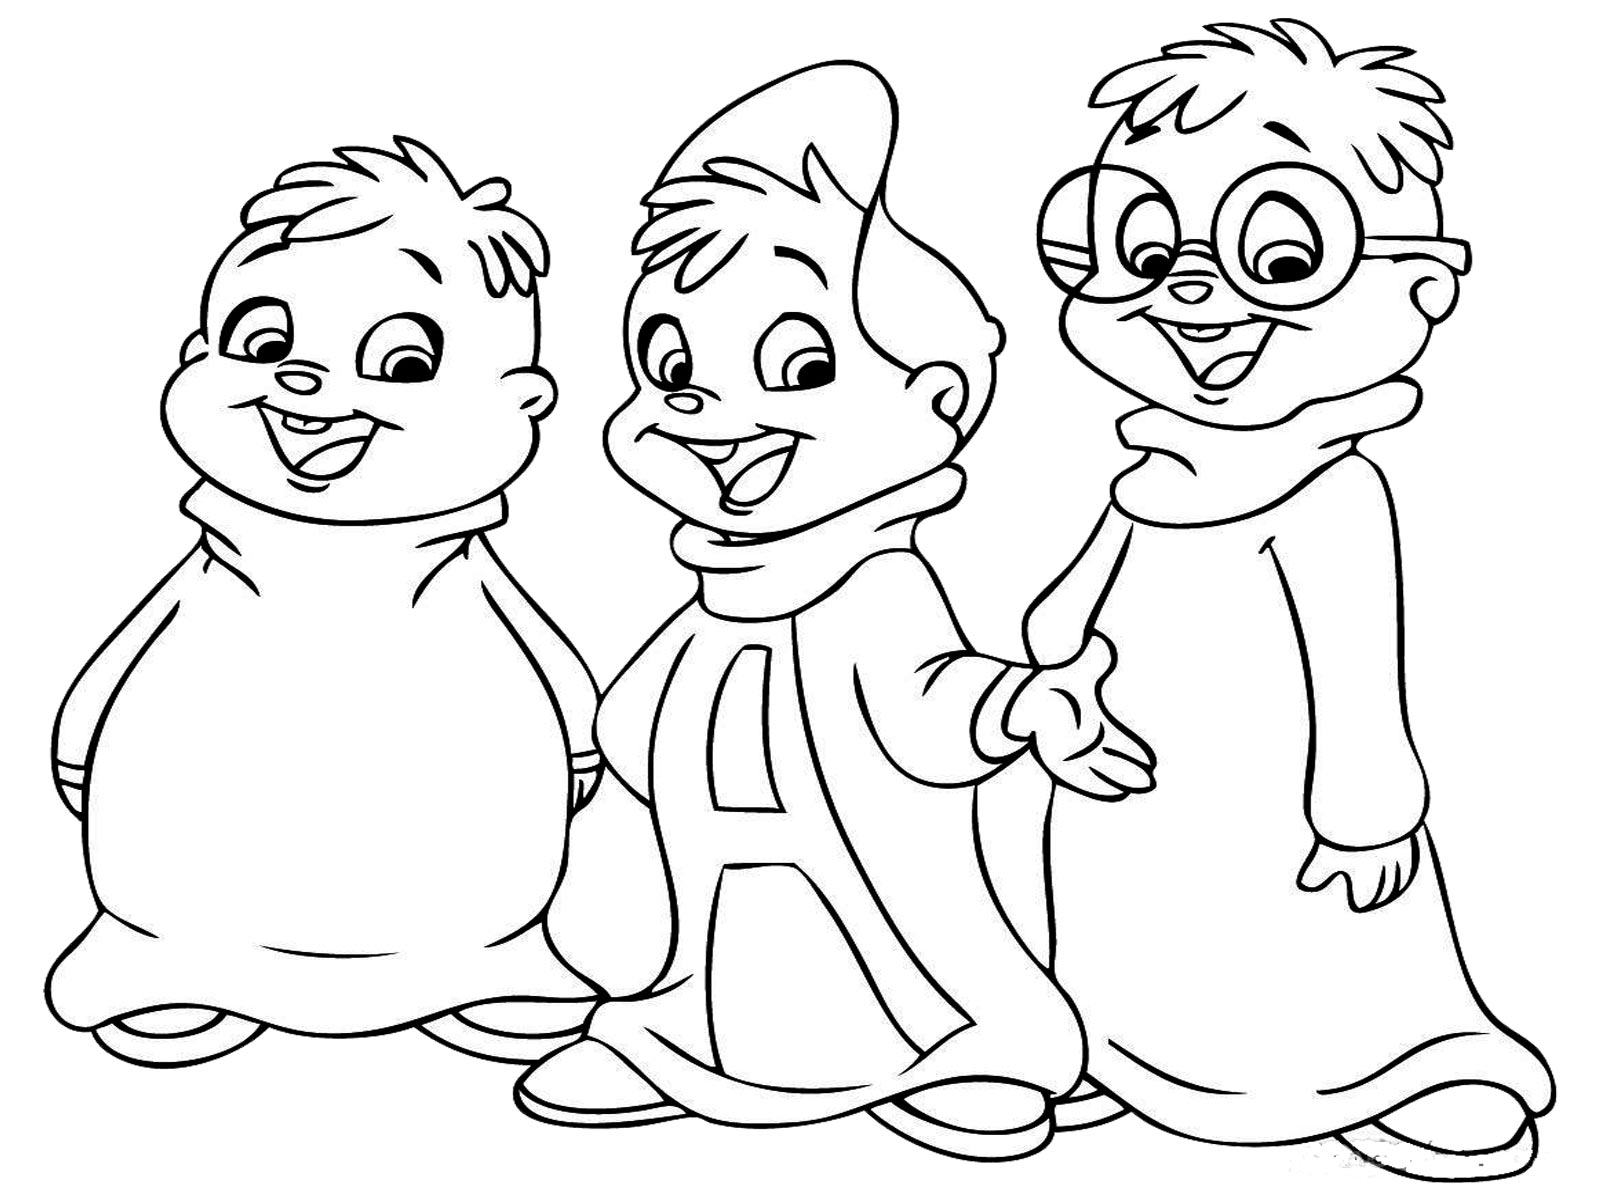 childrens day coloring pages - Coloring Pages Kids